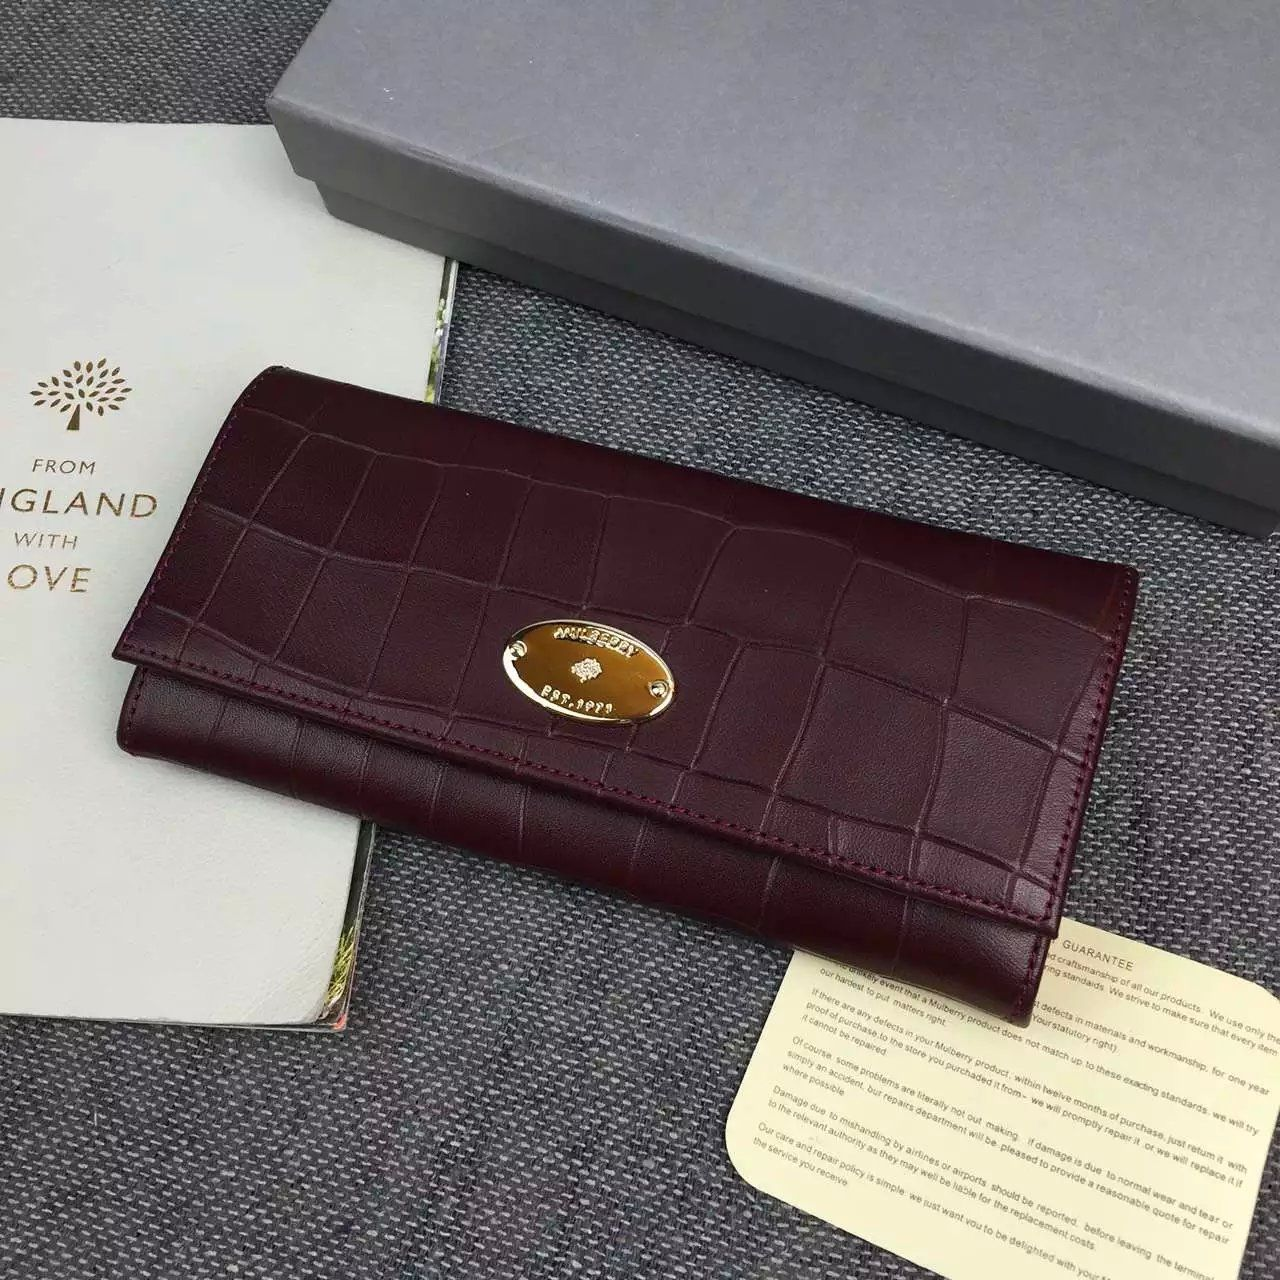 Spring 2016 Mulberry Wallet Collection Outlet UK-Mulberry Continental  Wallet Oxblood Deep Embossed Croc Print d20f5f11ea